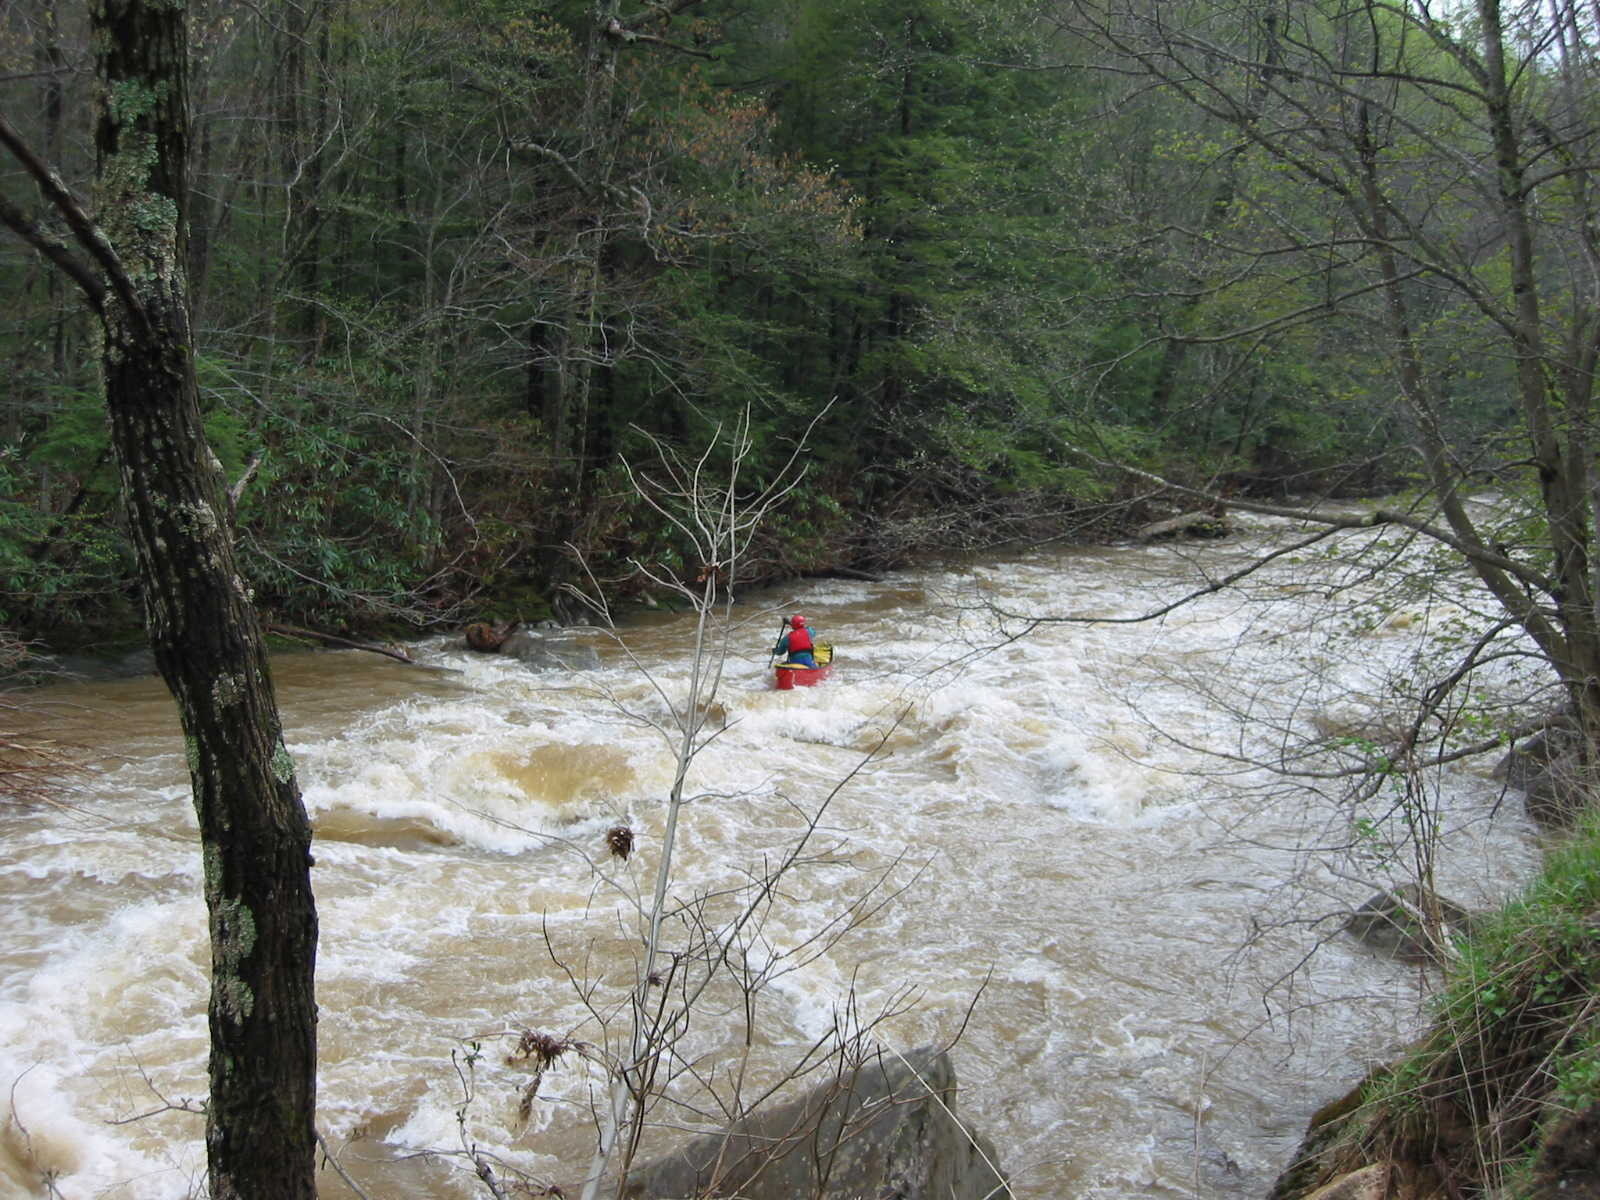 Scott Gravatt continuing below the big South Fork rapid (Photo by Lou Campagna - 4/26/04)